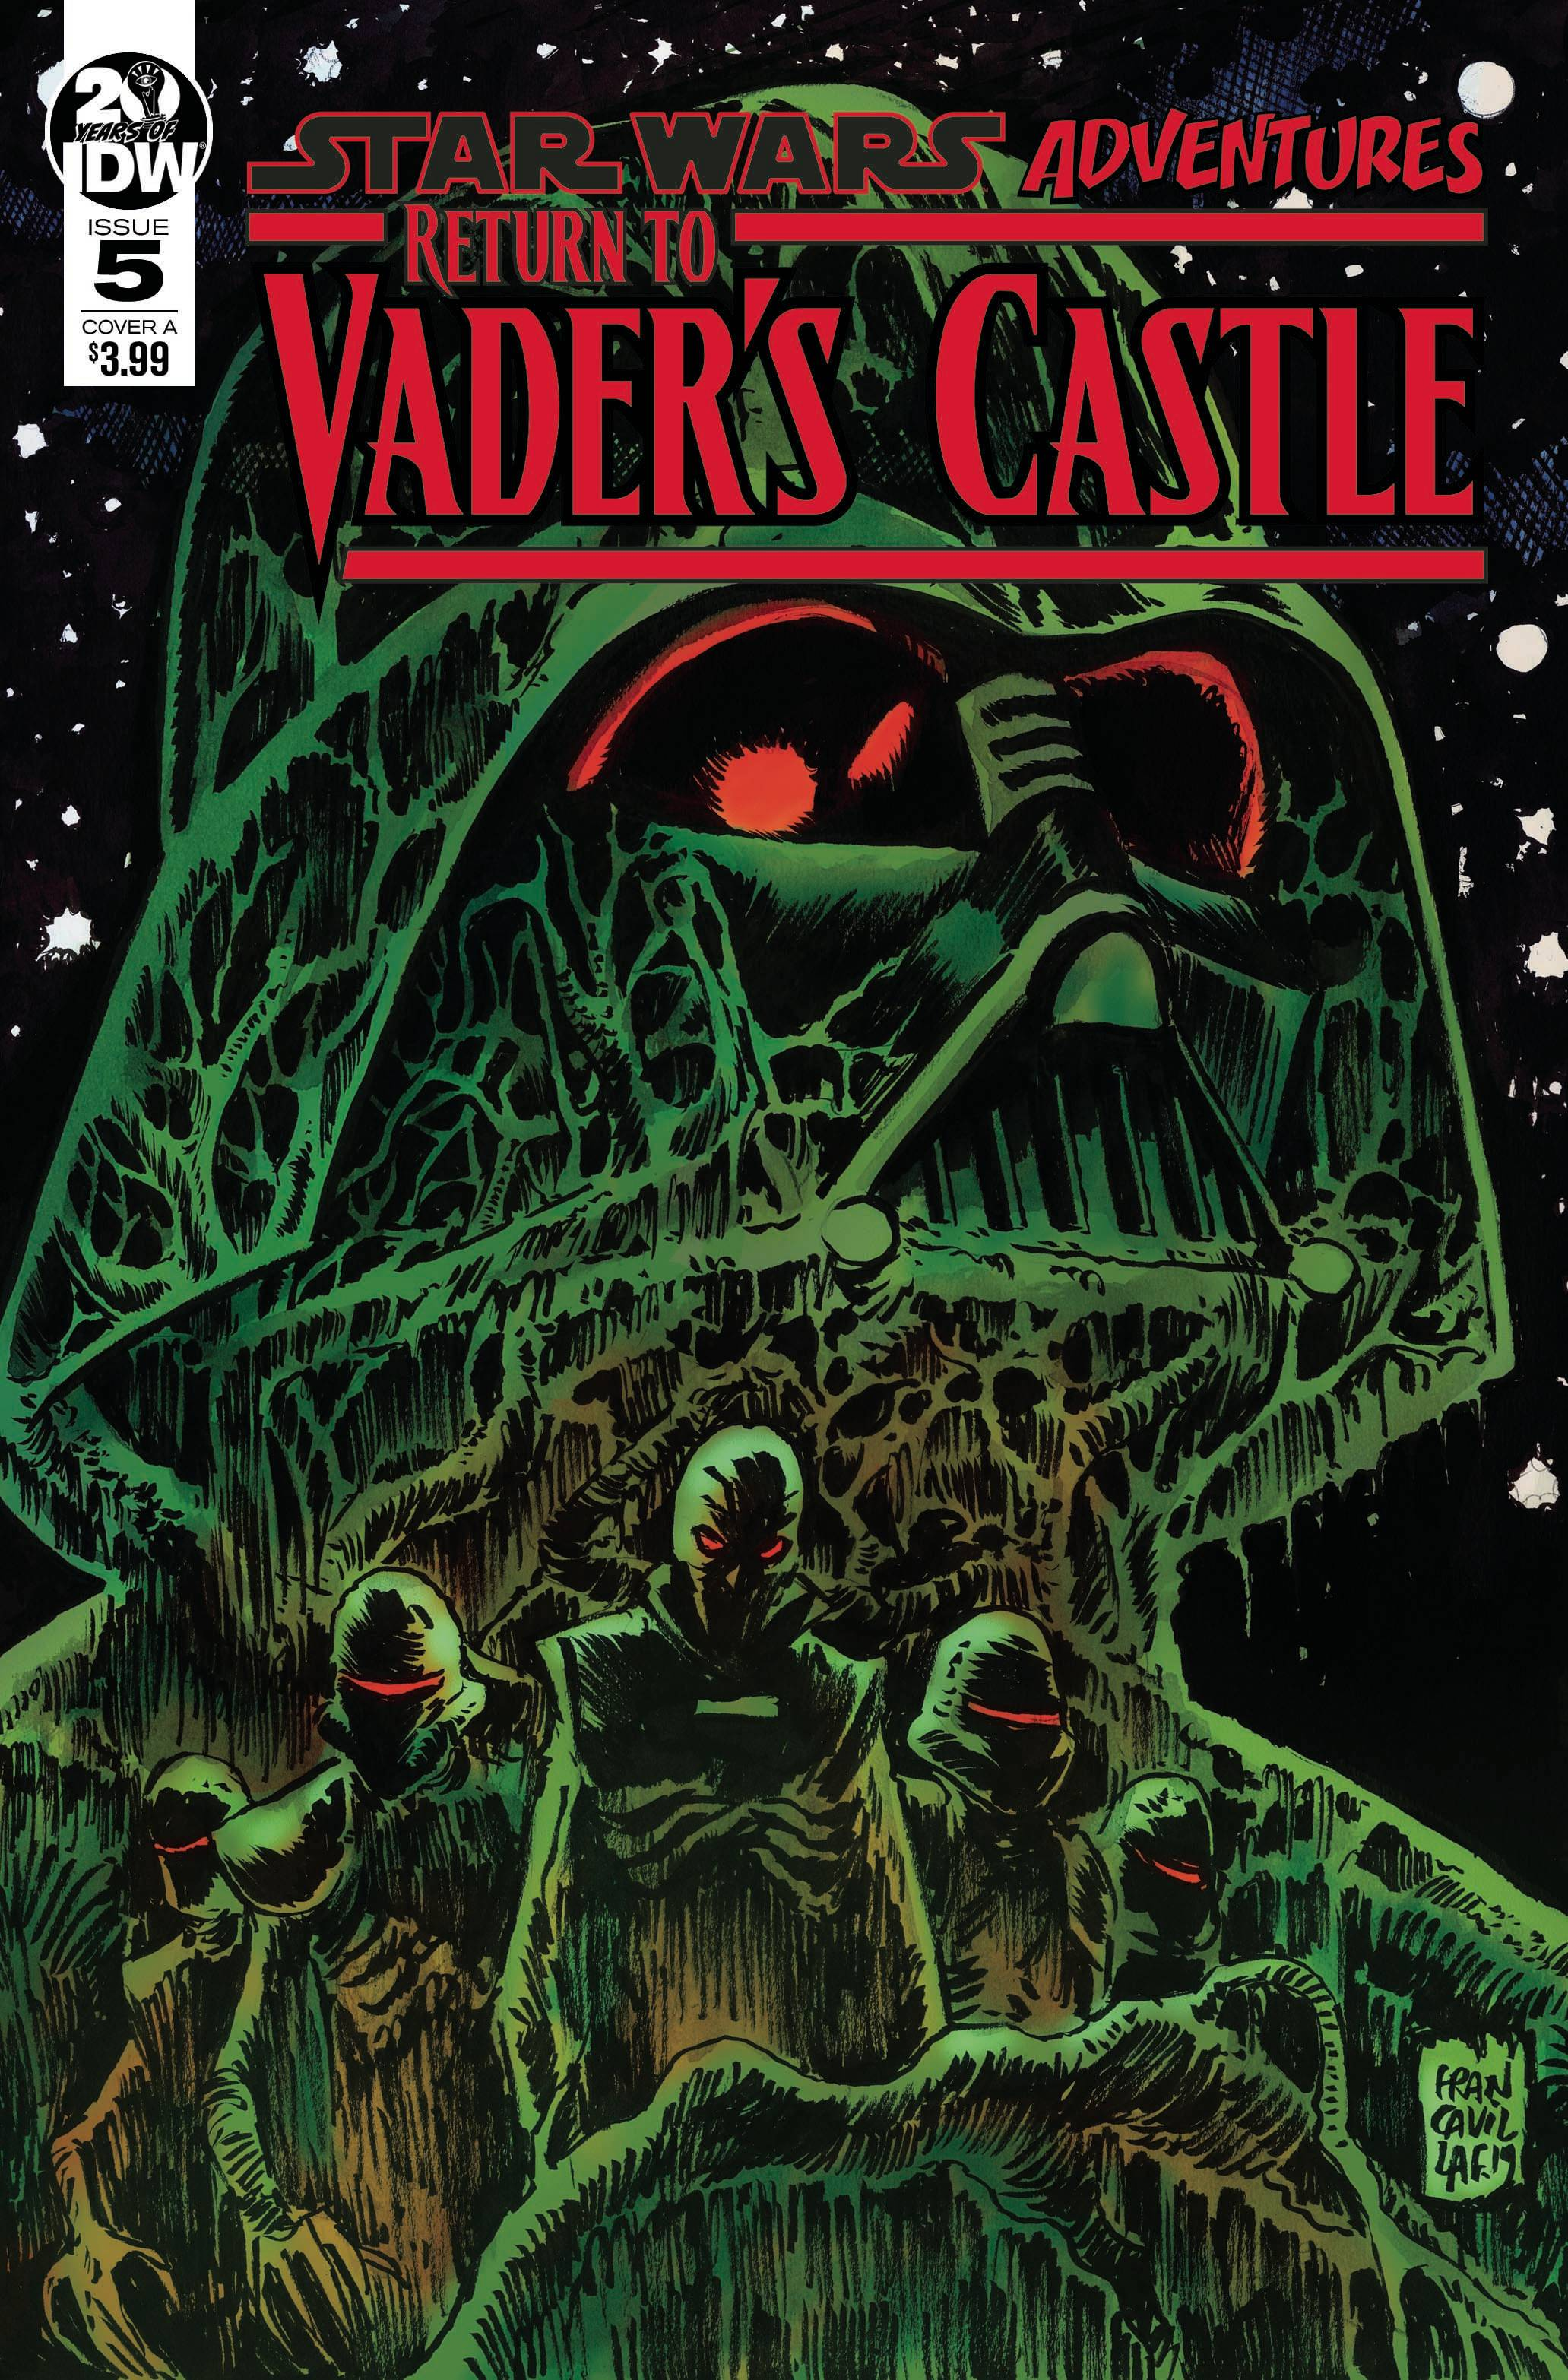 STAR WARS ADVENTURES RETURN TO VADERS CASTLE 5 CVR A FRANCAVILLA.jpg